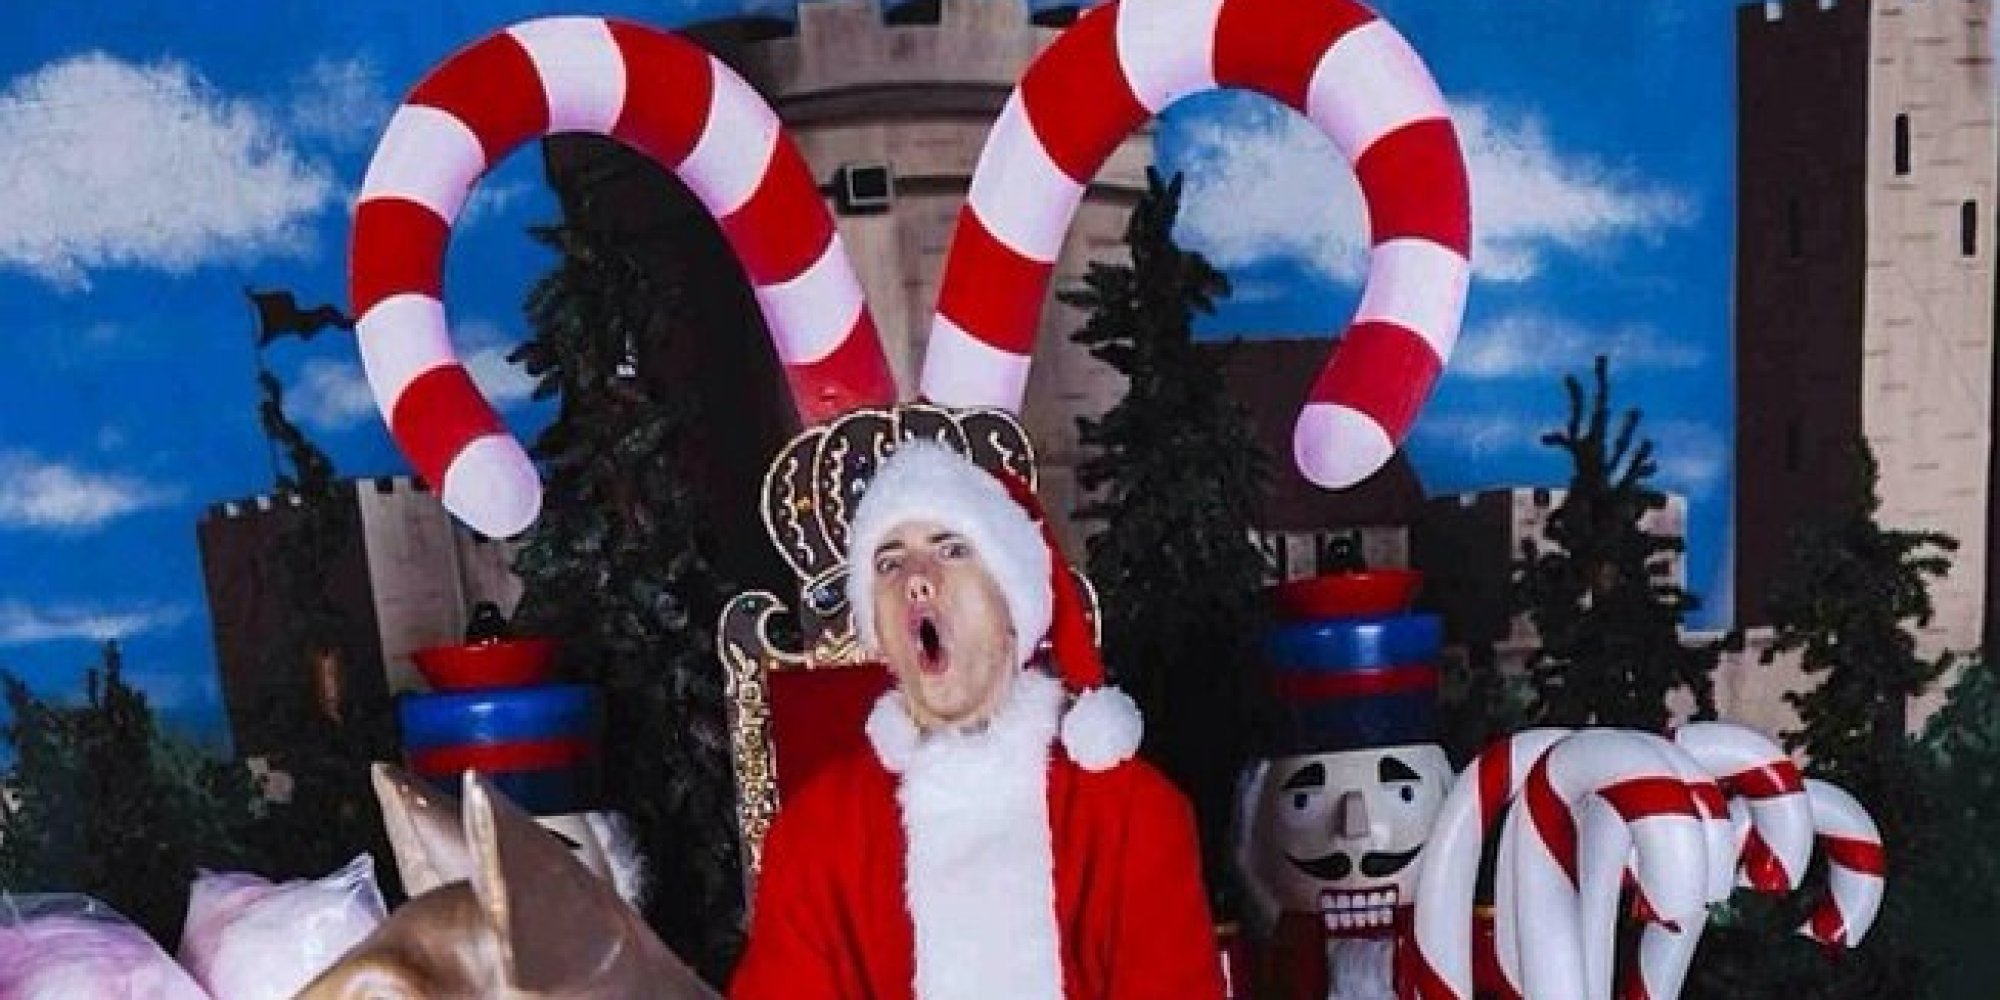 Eminems Take On Christmas Is Exactly What Youd Expect